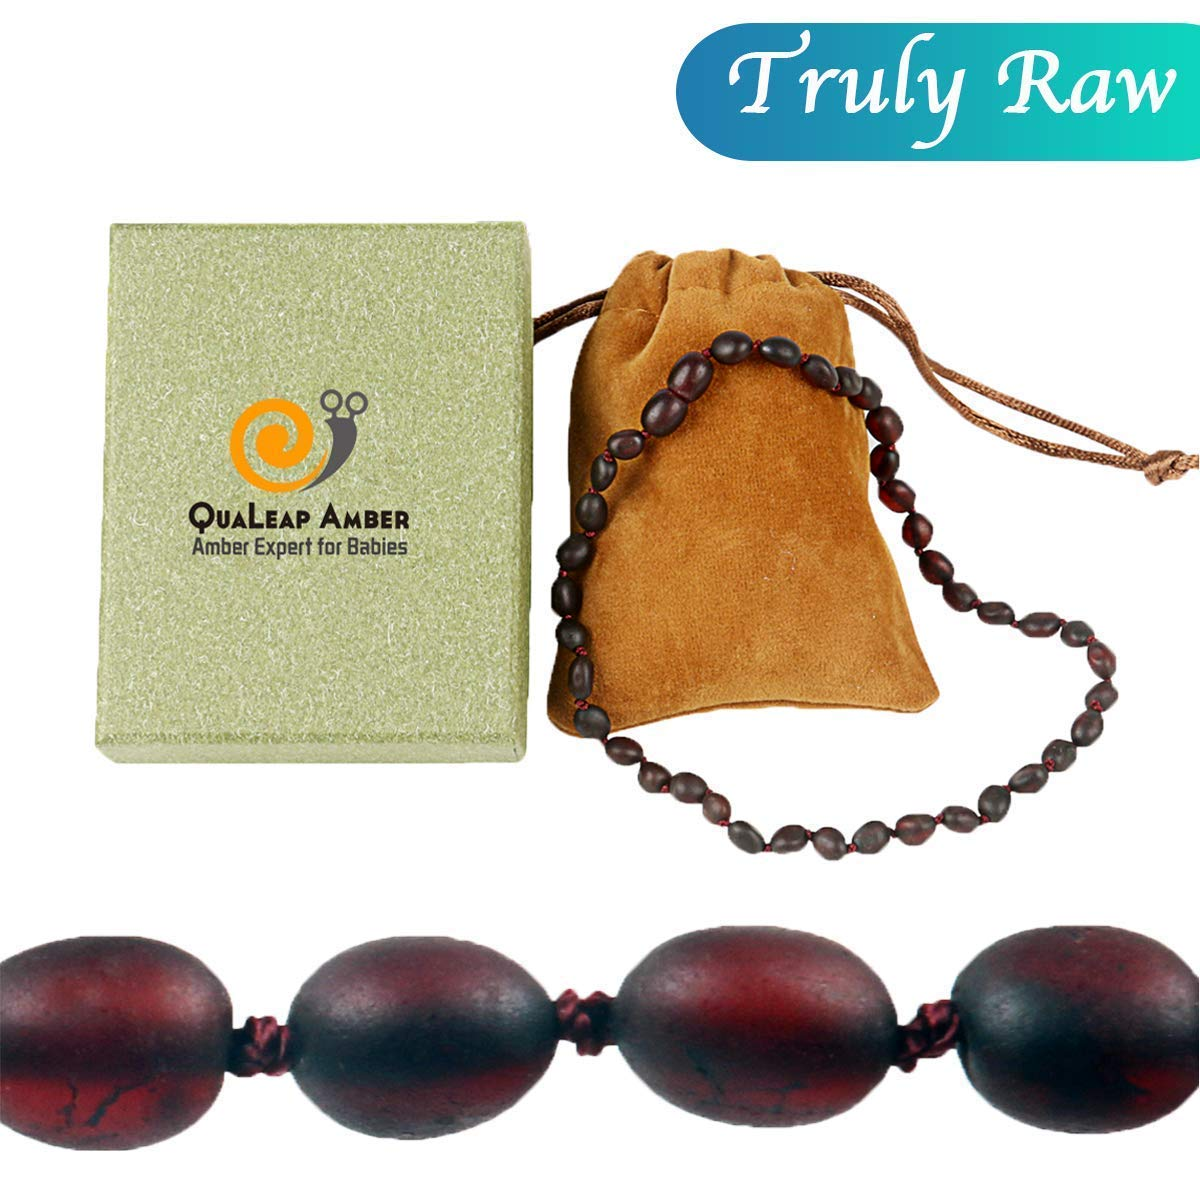 Raw Baltic Amber Teething Necklace for Baby (Unisex - Raw Cherry - 12.5 Inches), 100% Authentic Unpolished Amber Necklace for Infant & Toddler Teething by QUALEAP AMBER